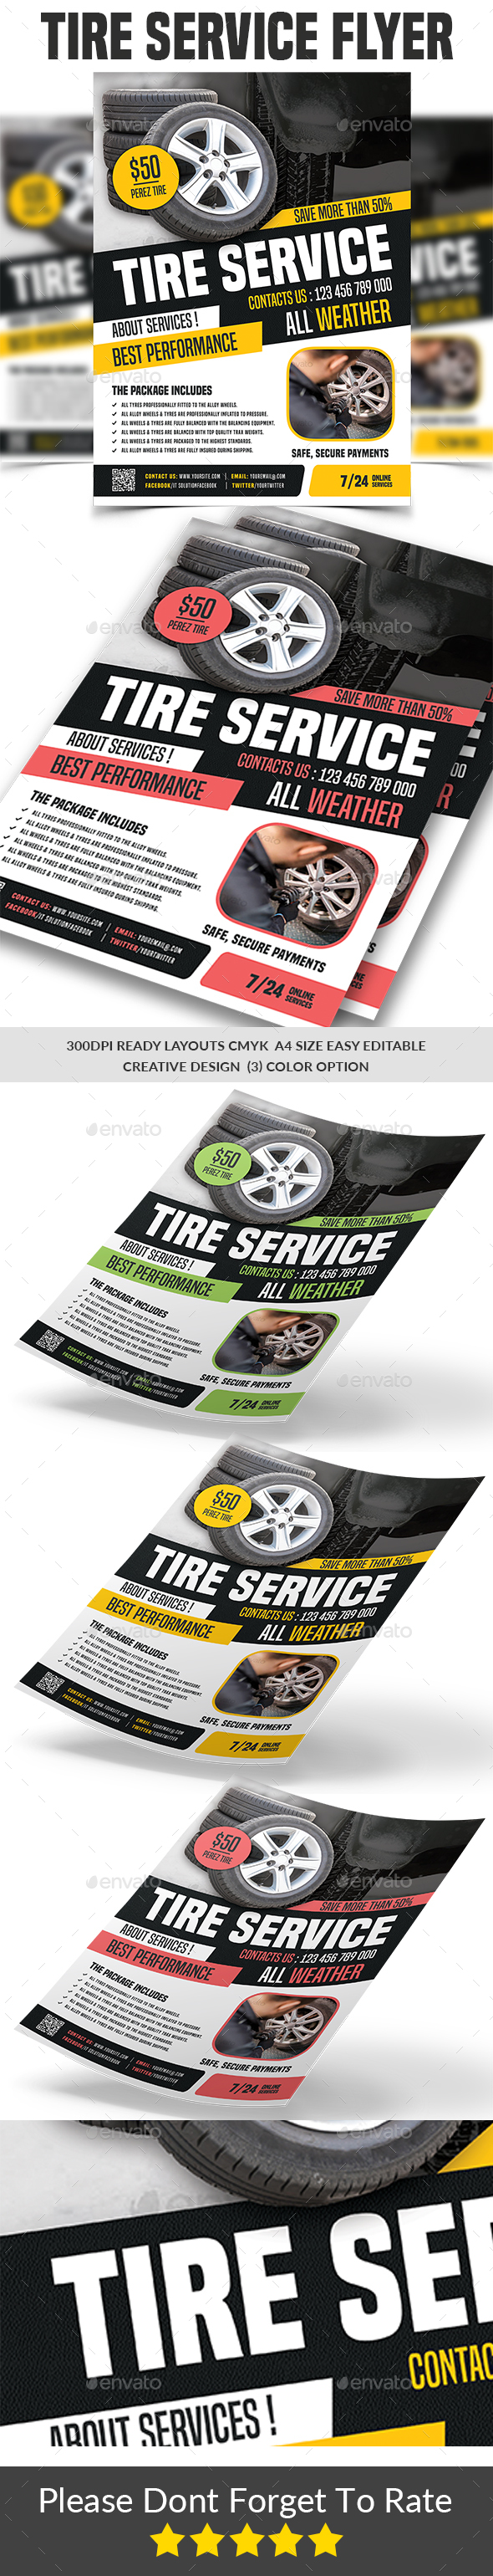 Tires Services Flyer Template - Corporate Flyers